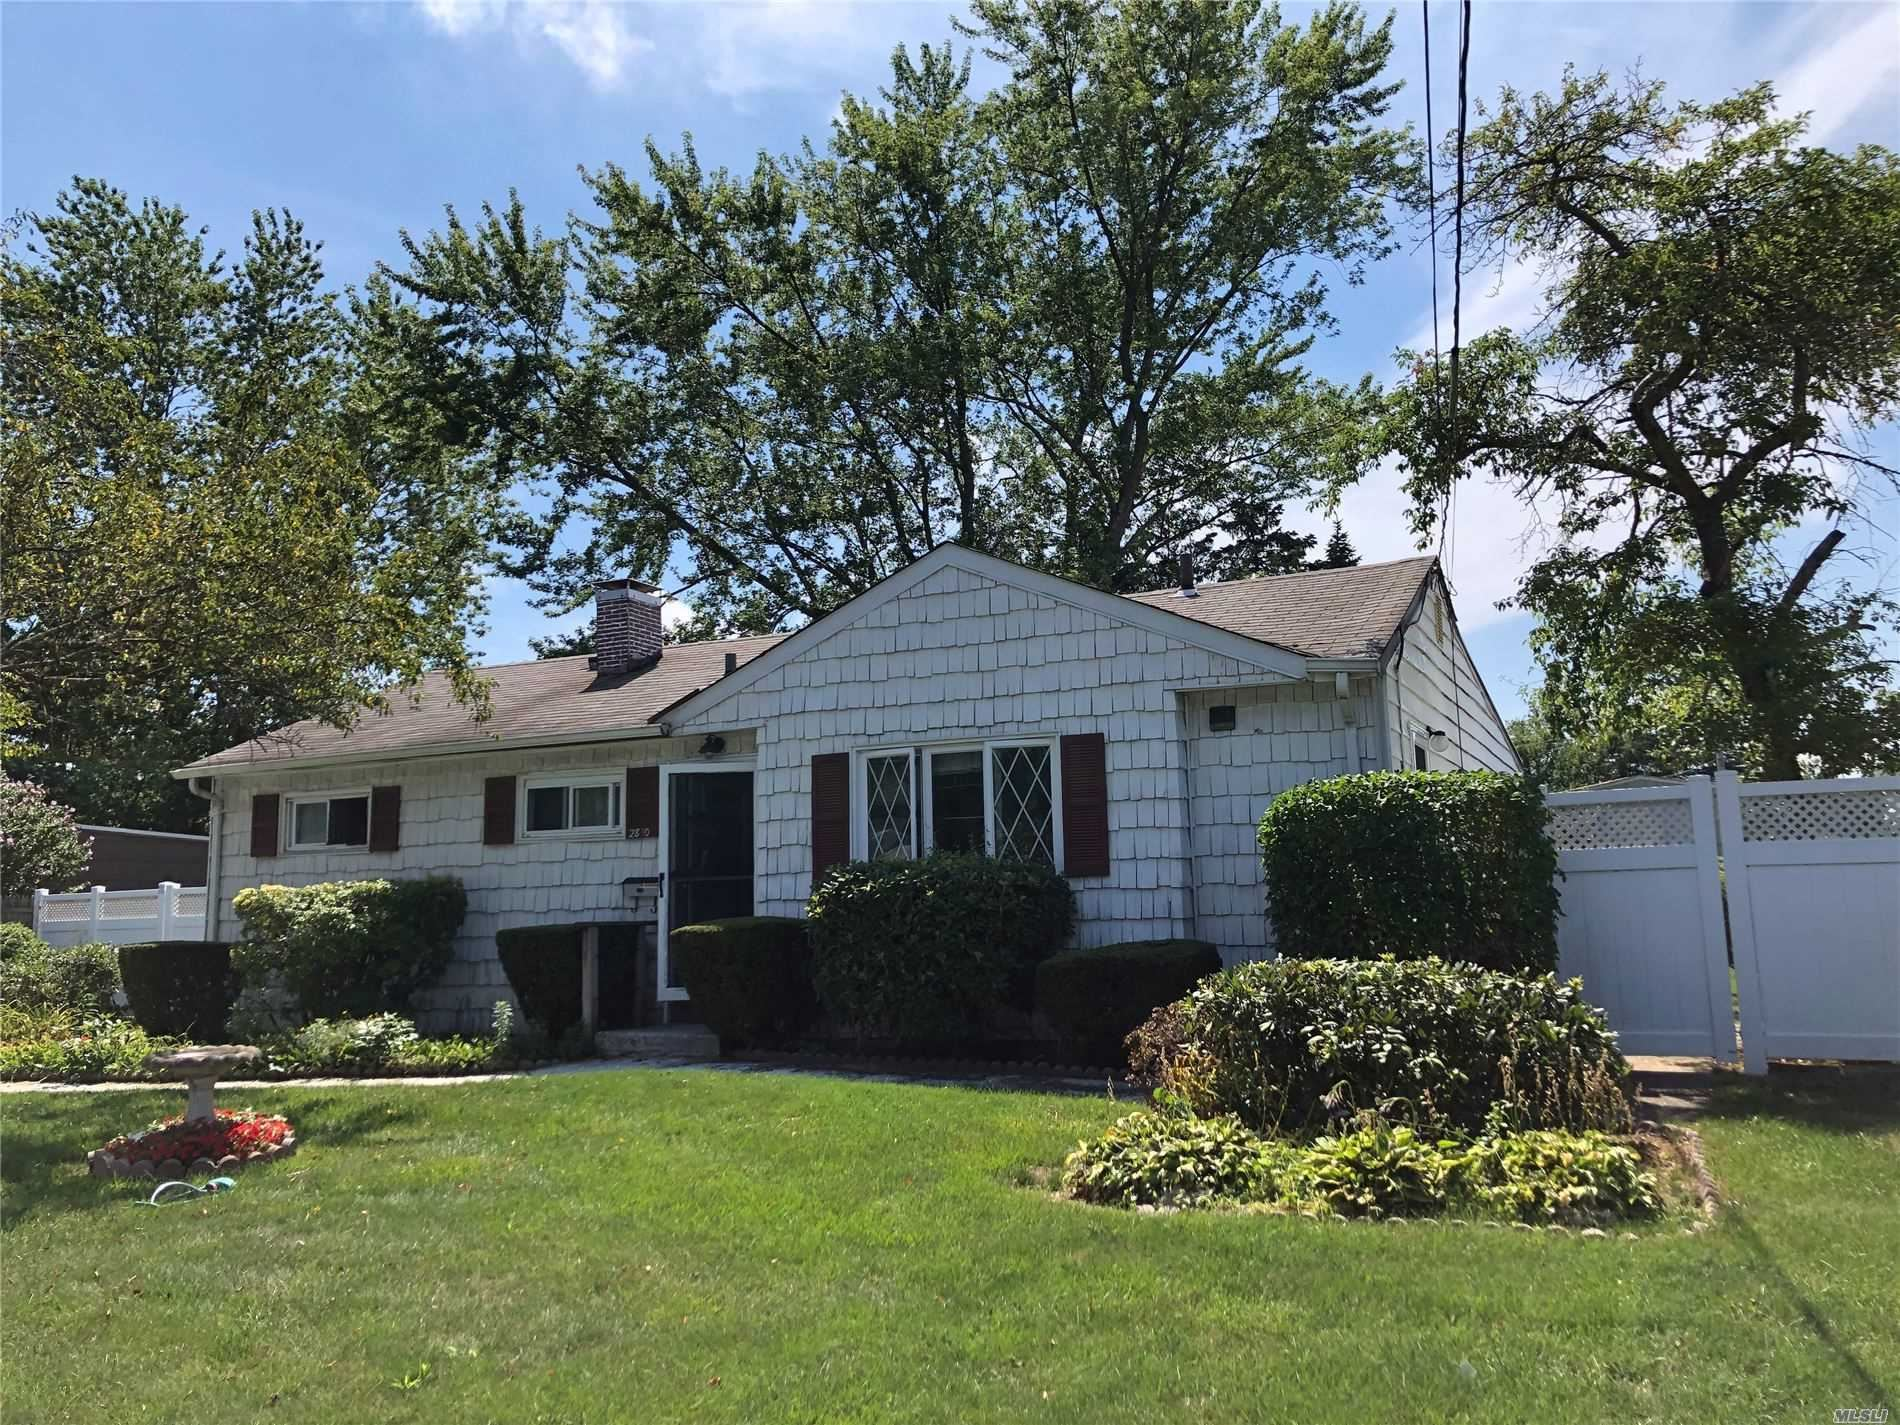 2810 Heather Avenue, Medford, NY 11763 - MLS#: 3237383